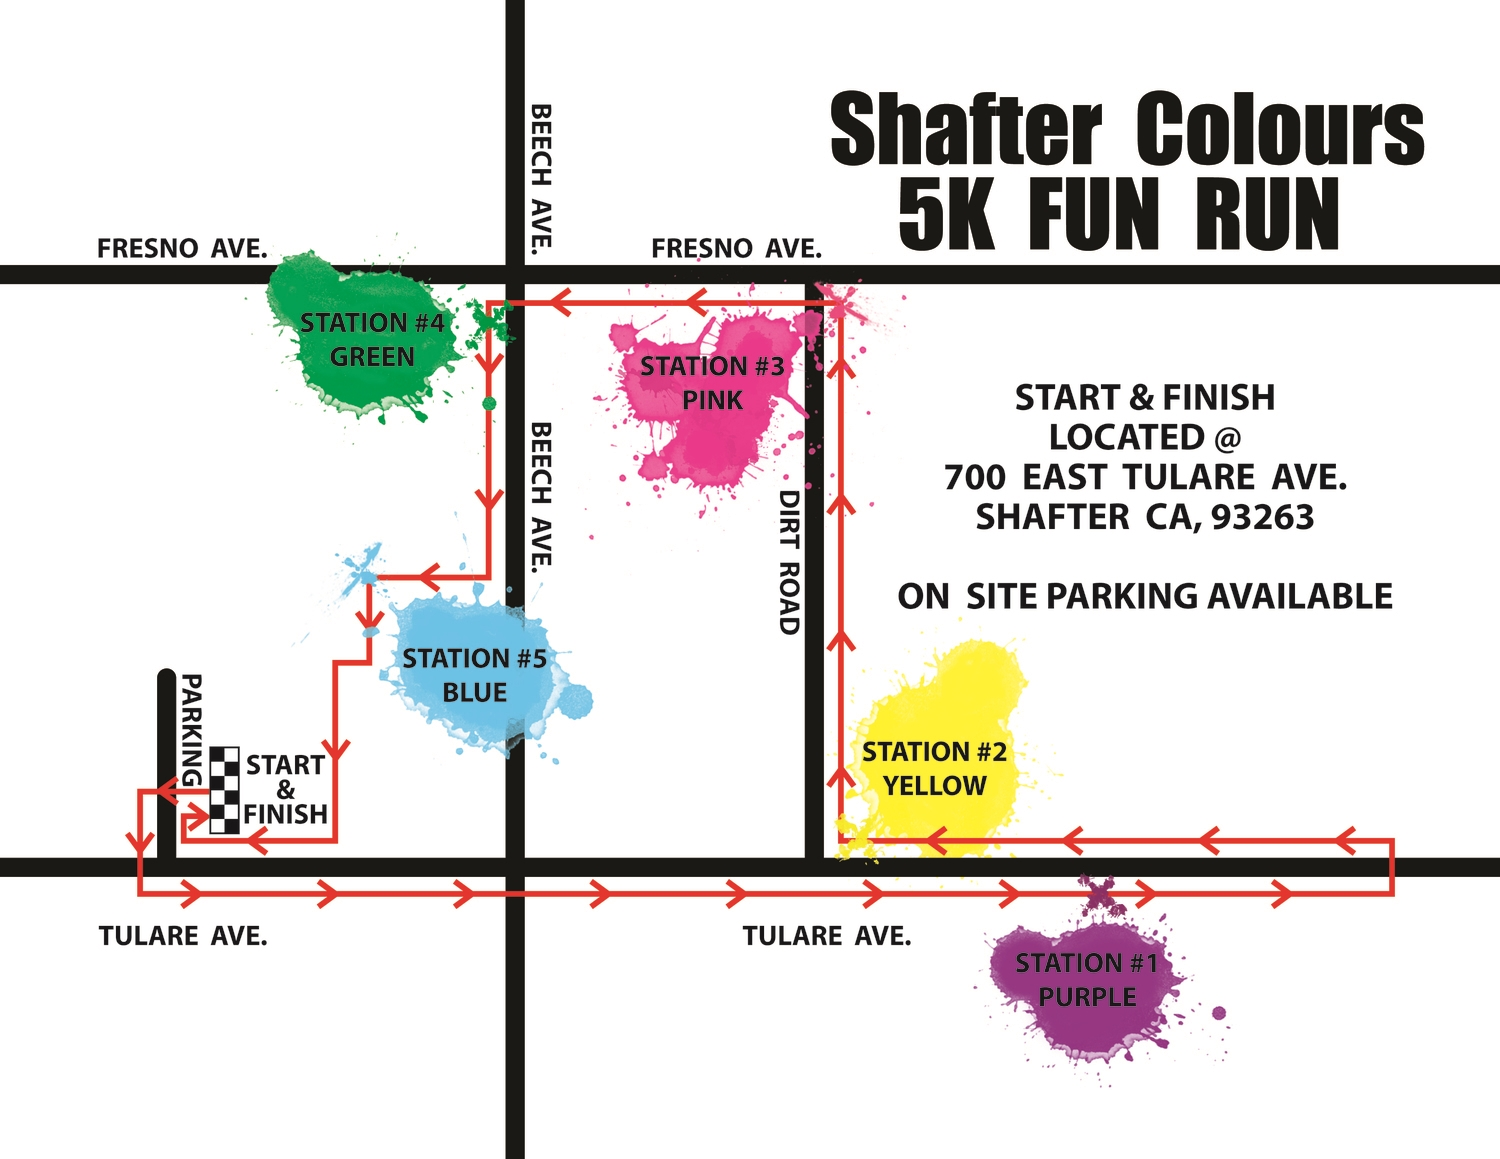 5-K COLOUR Run Map - new orange station location tba this year!